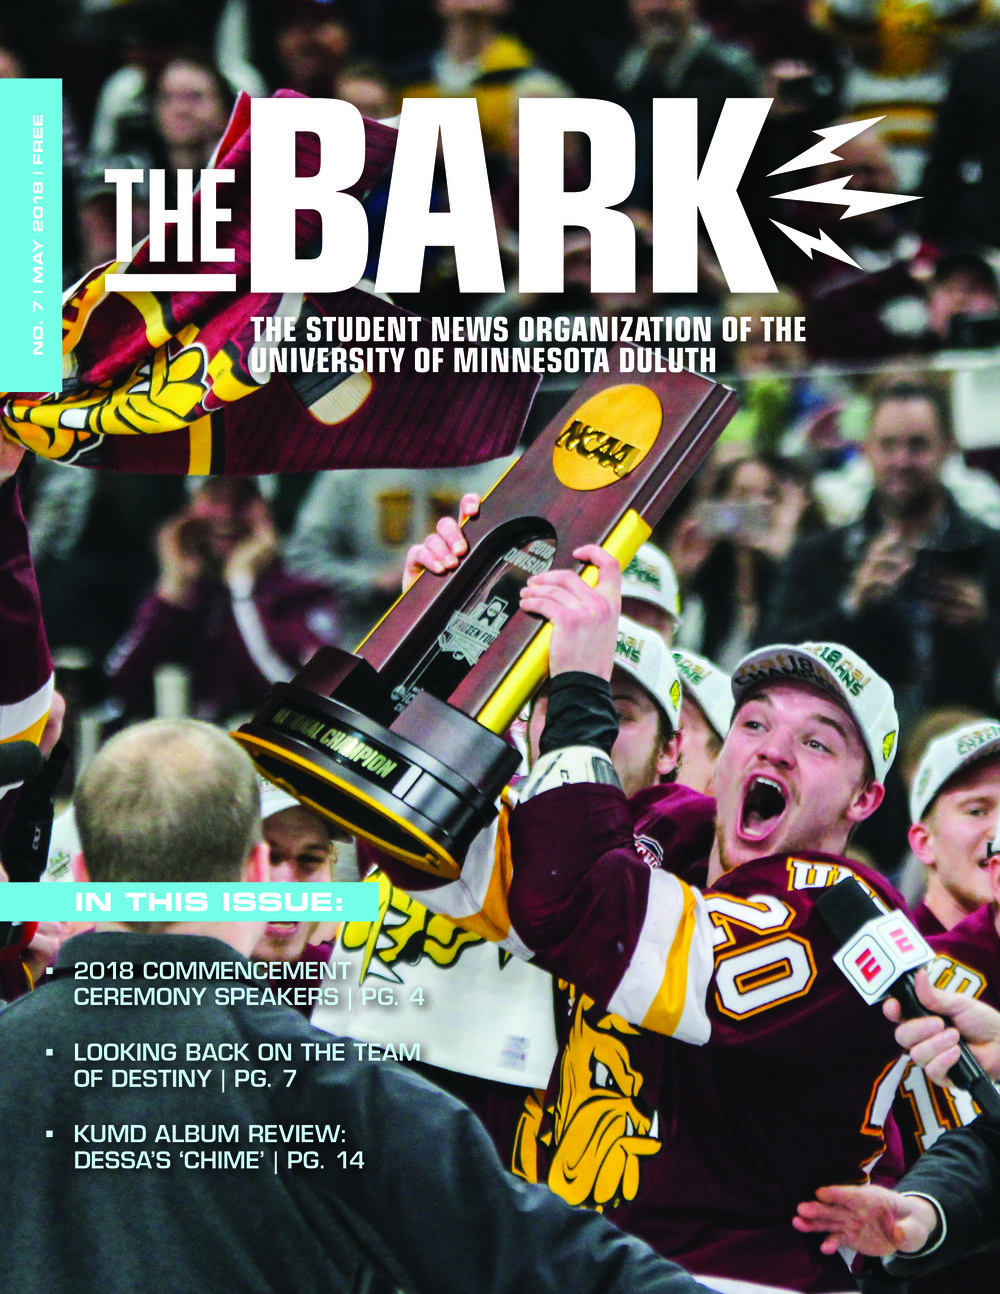 TheBark_May2018_CoverONLY.jpg